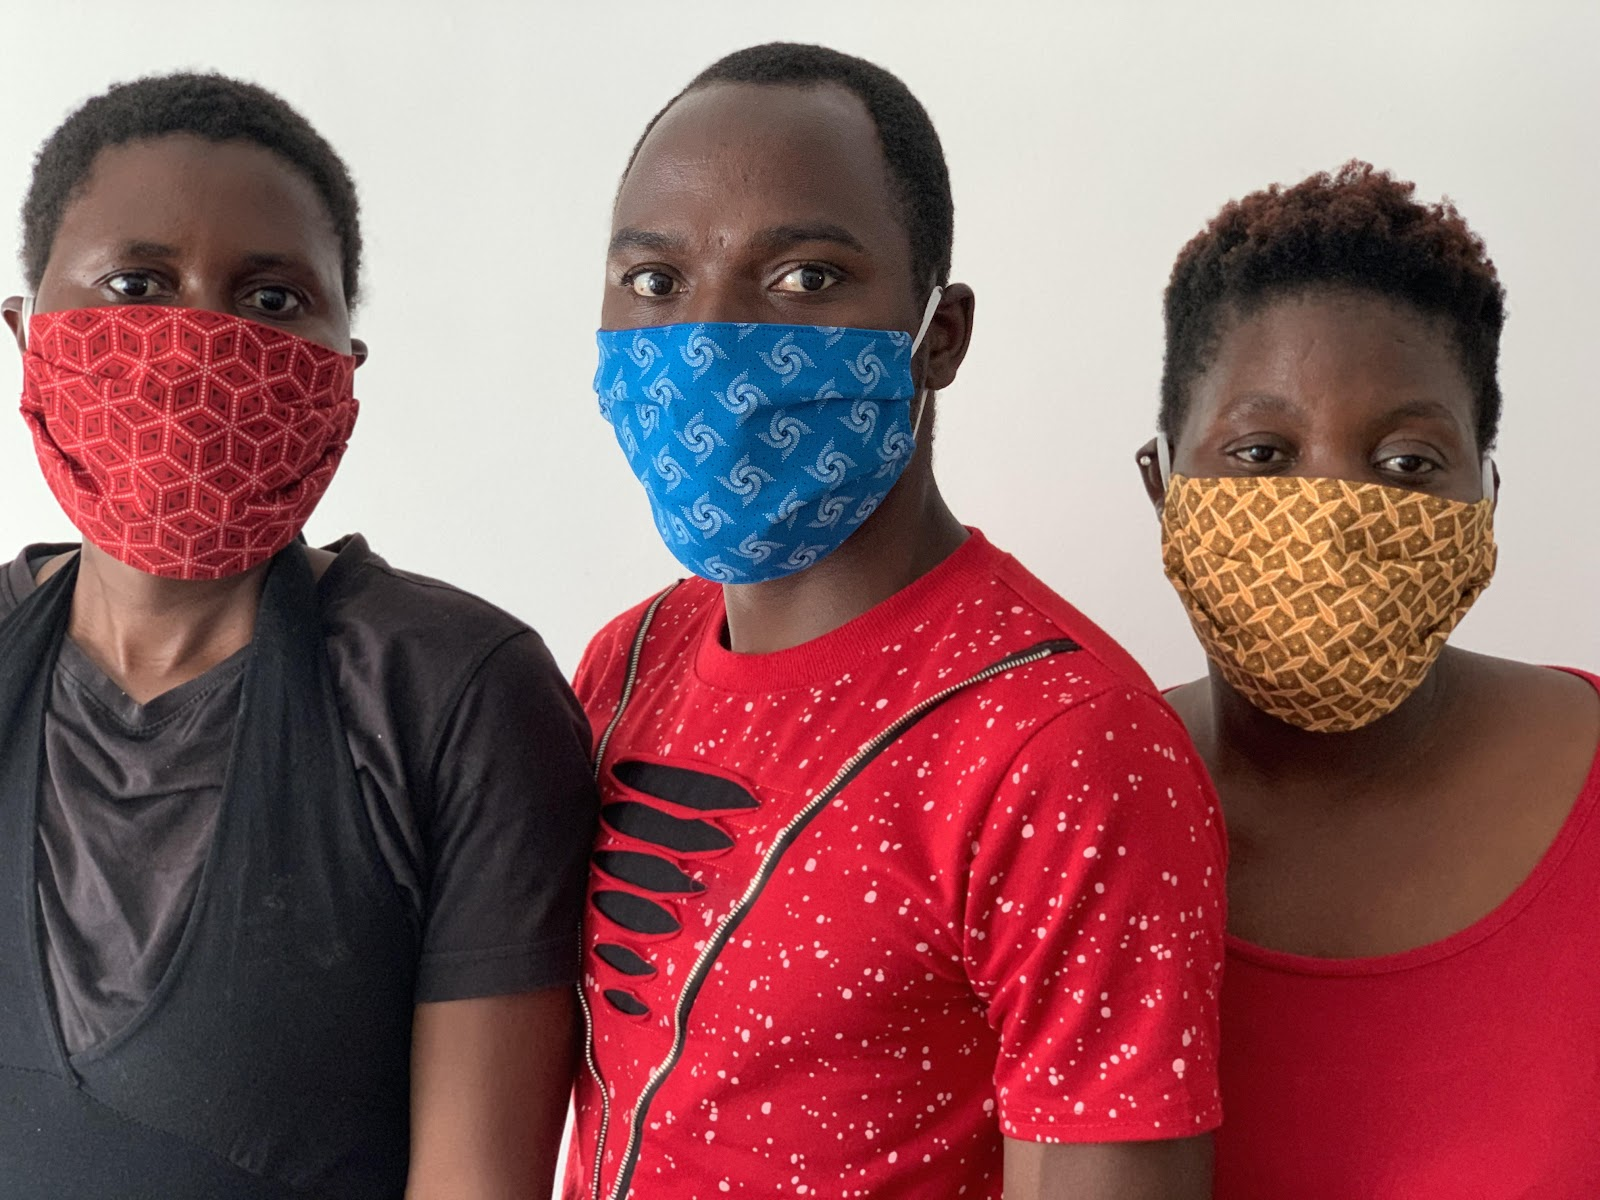 Shield Face Masks to curb the spread of Covid-19.